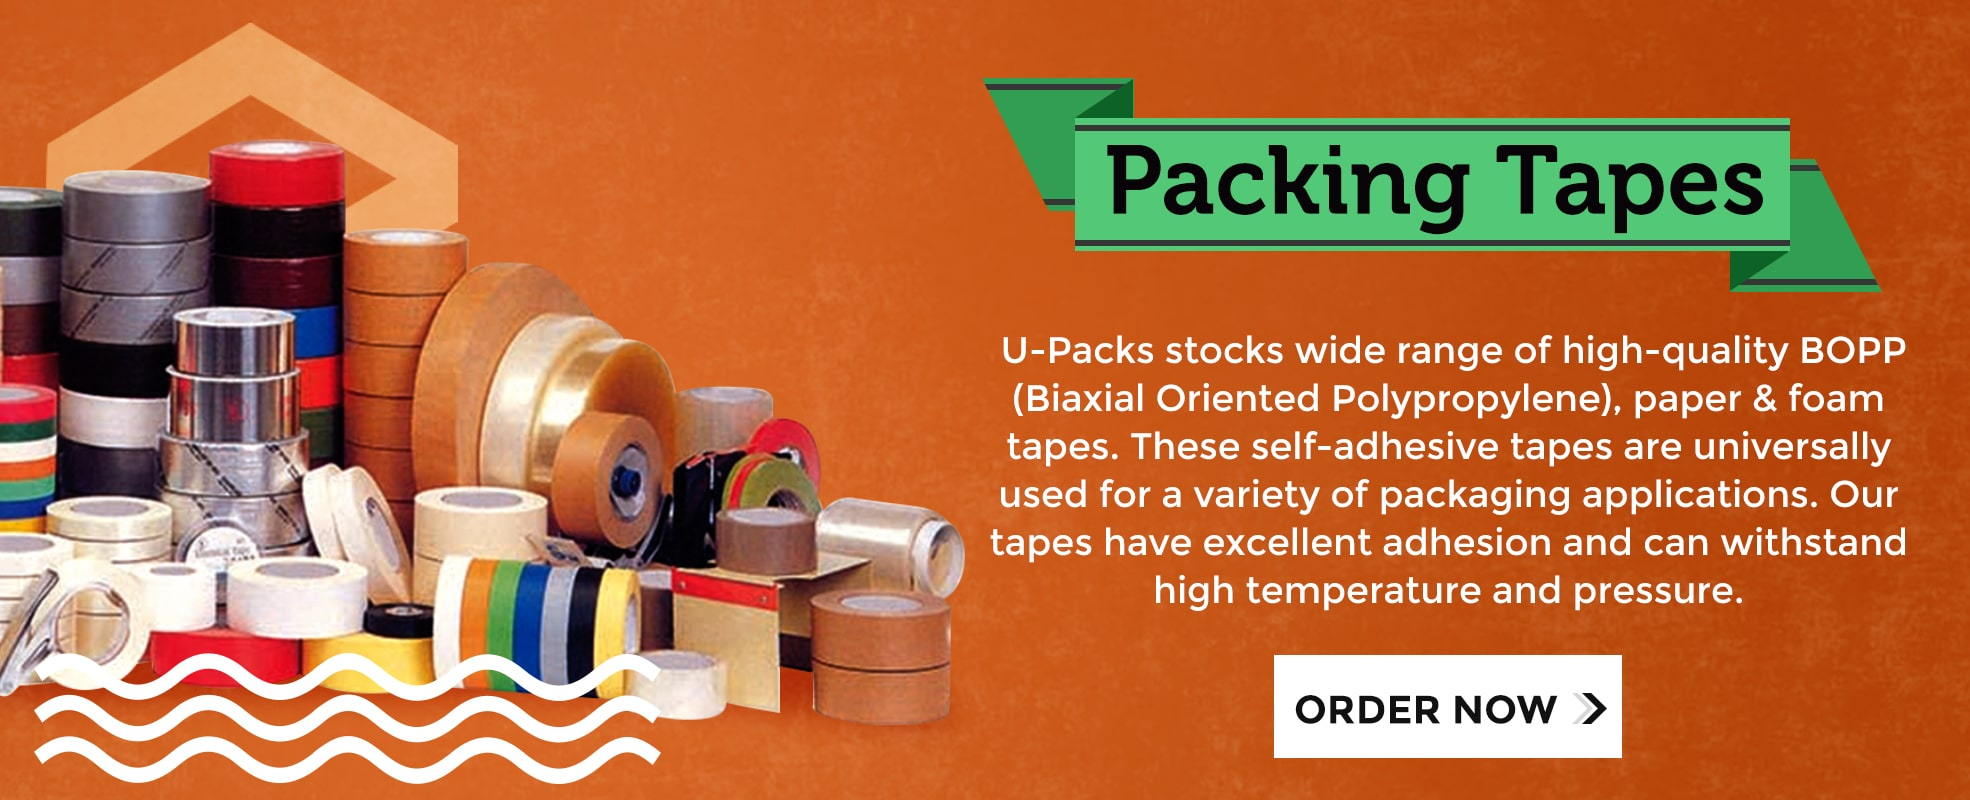 Buy Packing Tapes and Tape Dispensers Online